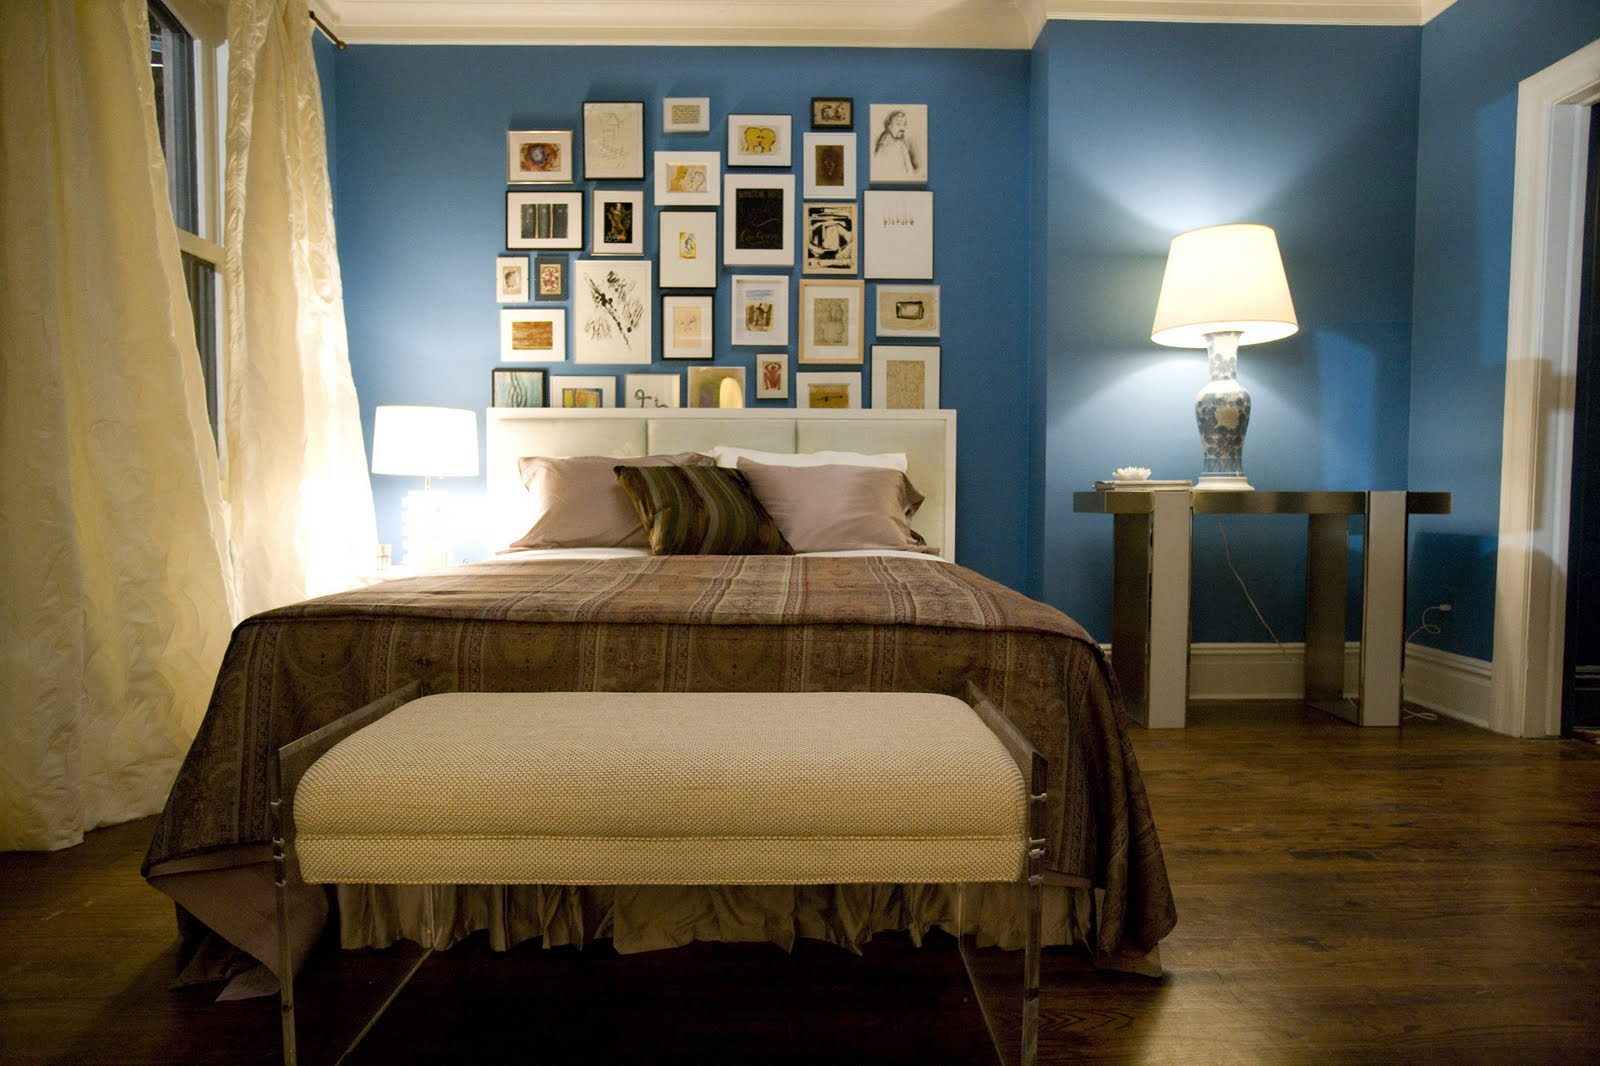 How to be lovely interior design carrie bradshaw 39 s - Carrie bradshaw apartment layout ...